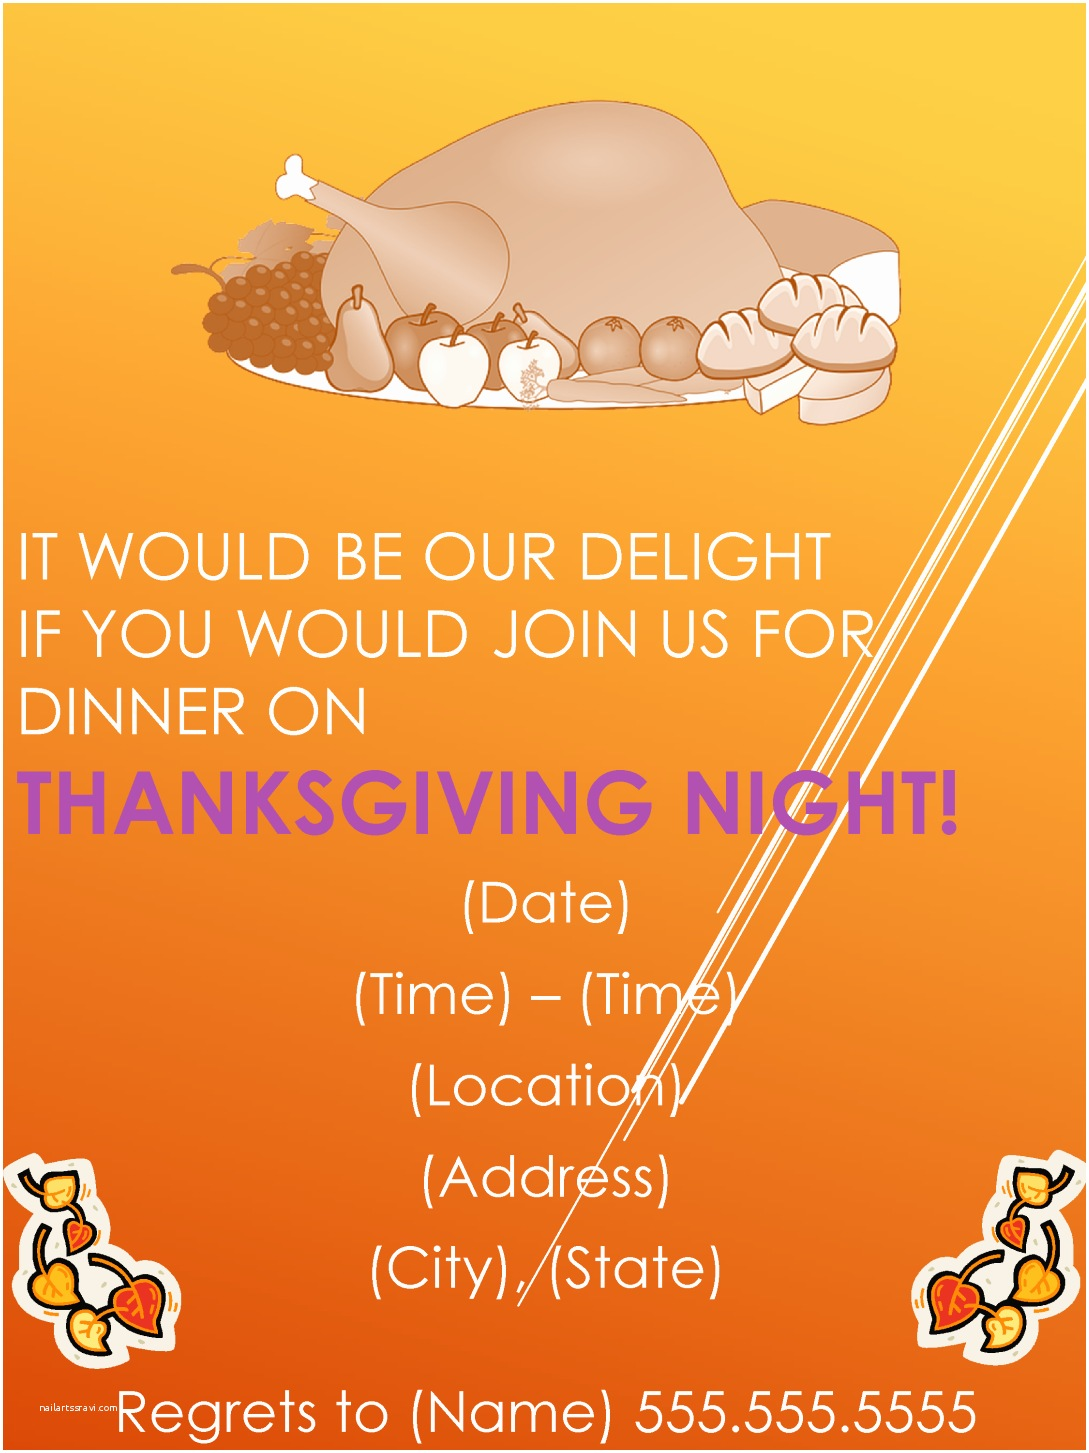 Dinner Party Invitation Template Thanksgiving Dinner Party Invitation Template